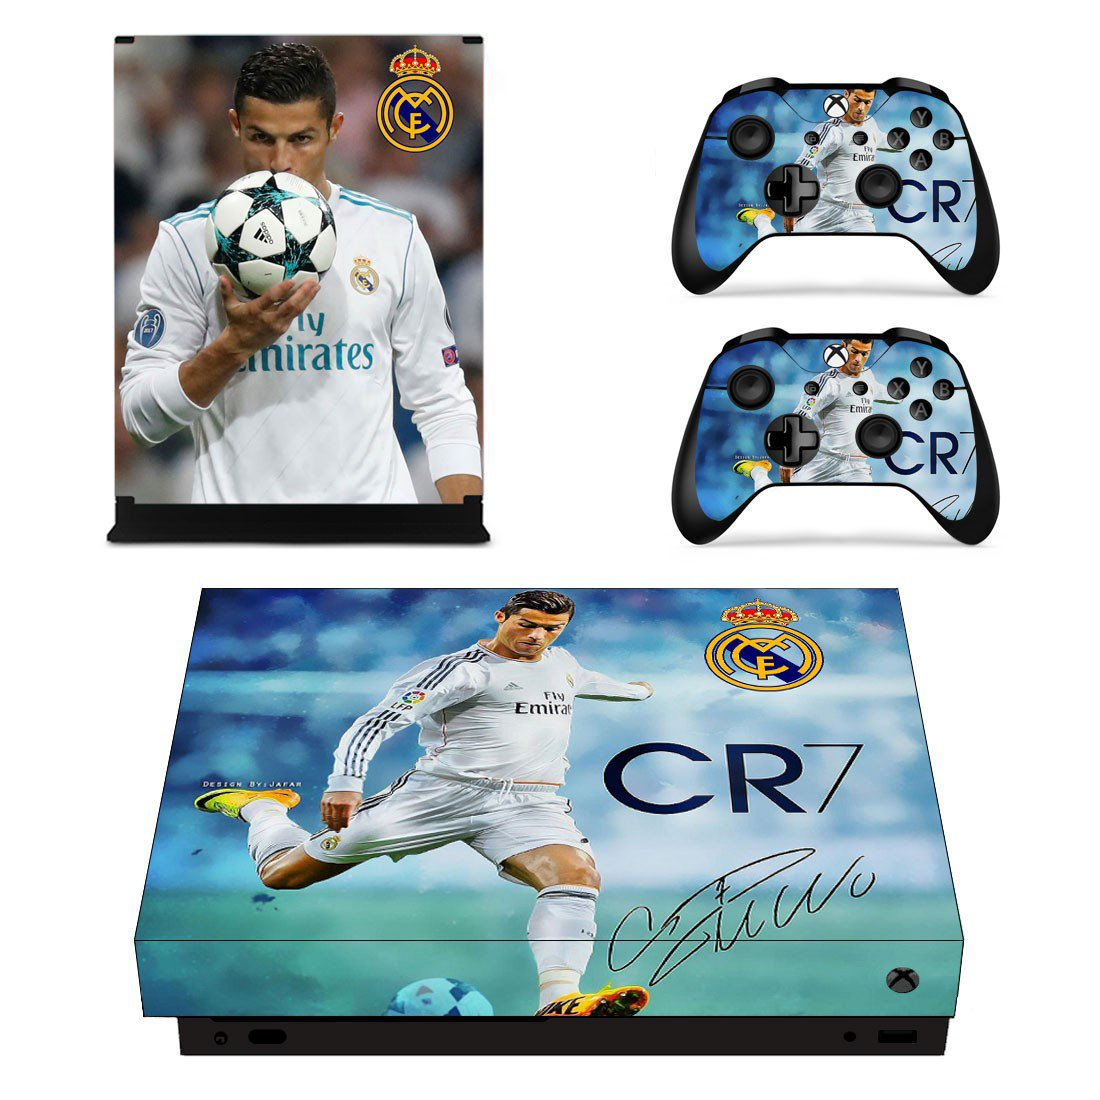 Cristiano Ronaldo decal skin sticker for Xbox One X console and controllers